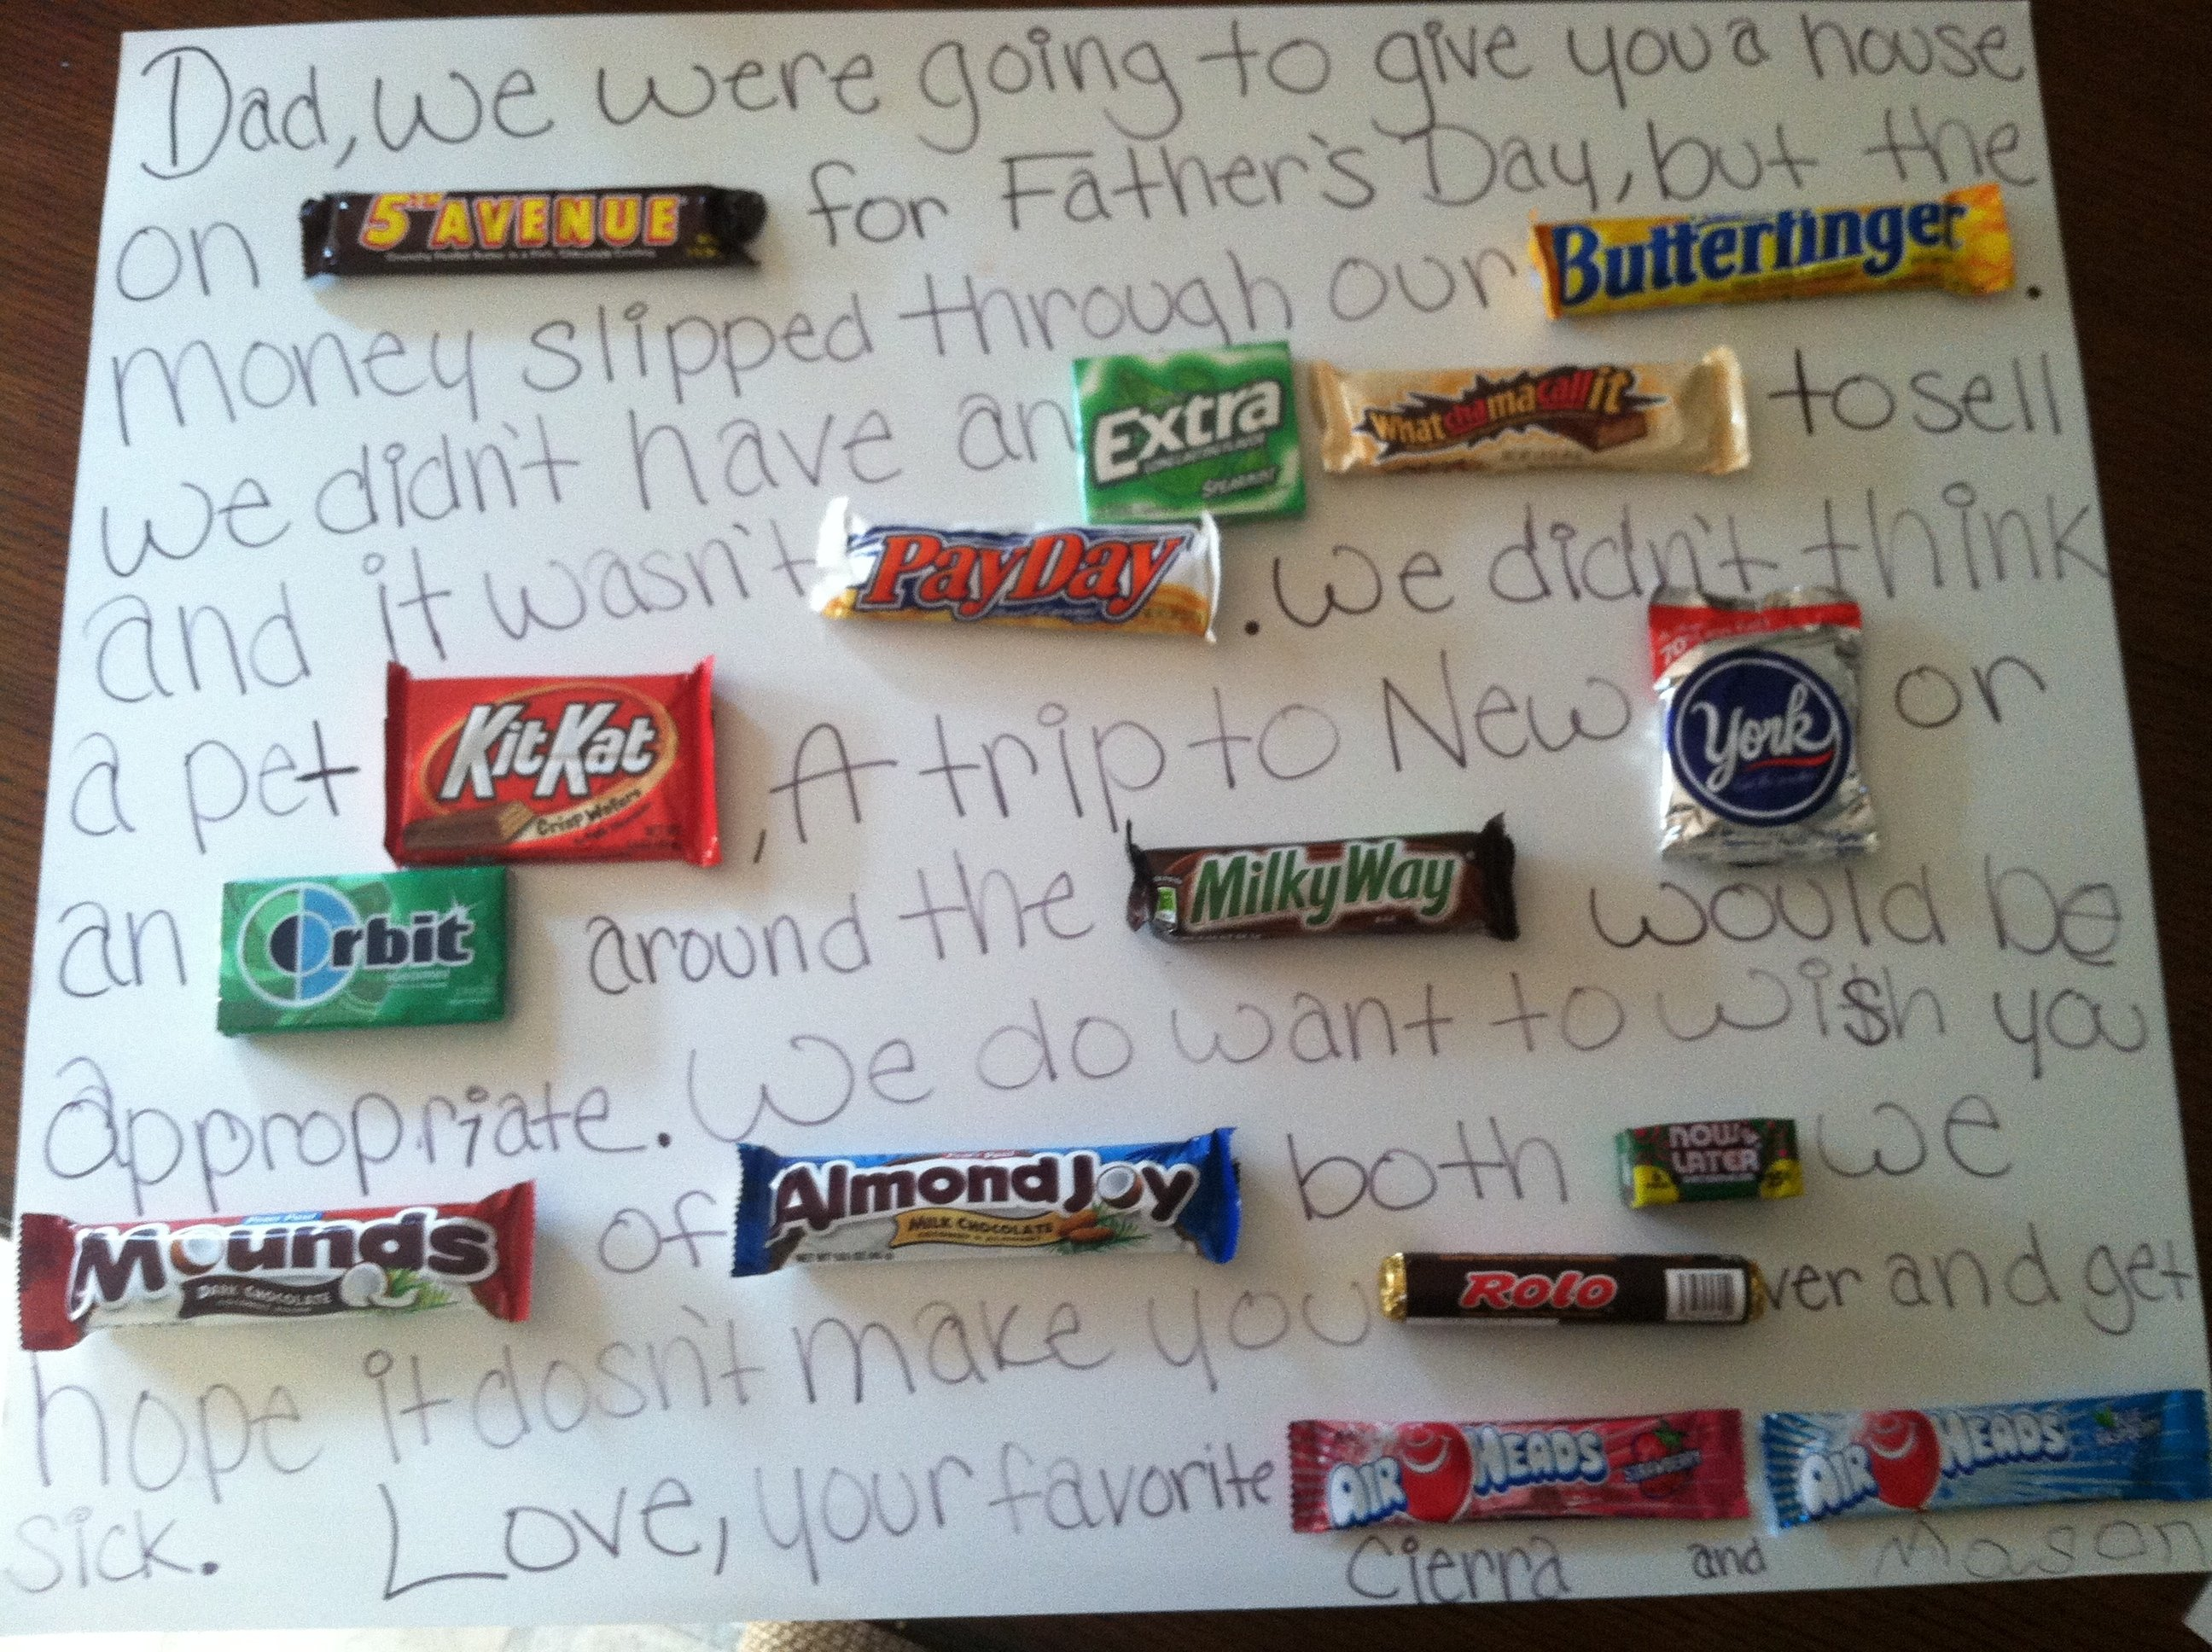 10 Gorgeous Christmas Gift Idea For Dad wemadeitgjcm gift for dad made it and ate it pinterest dads 1 2021